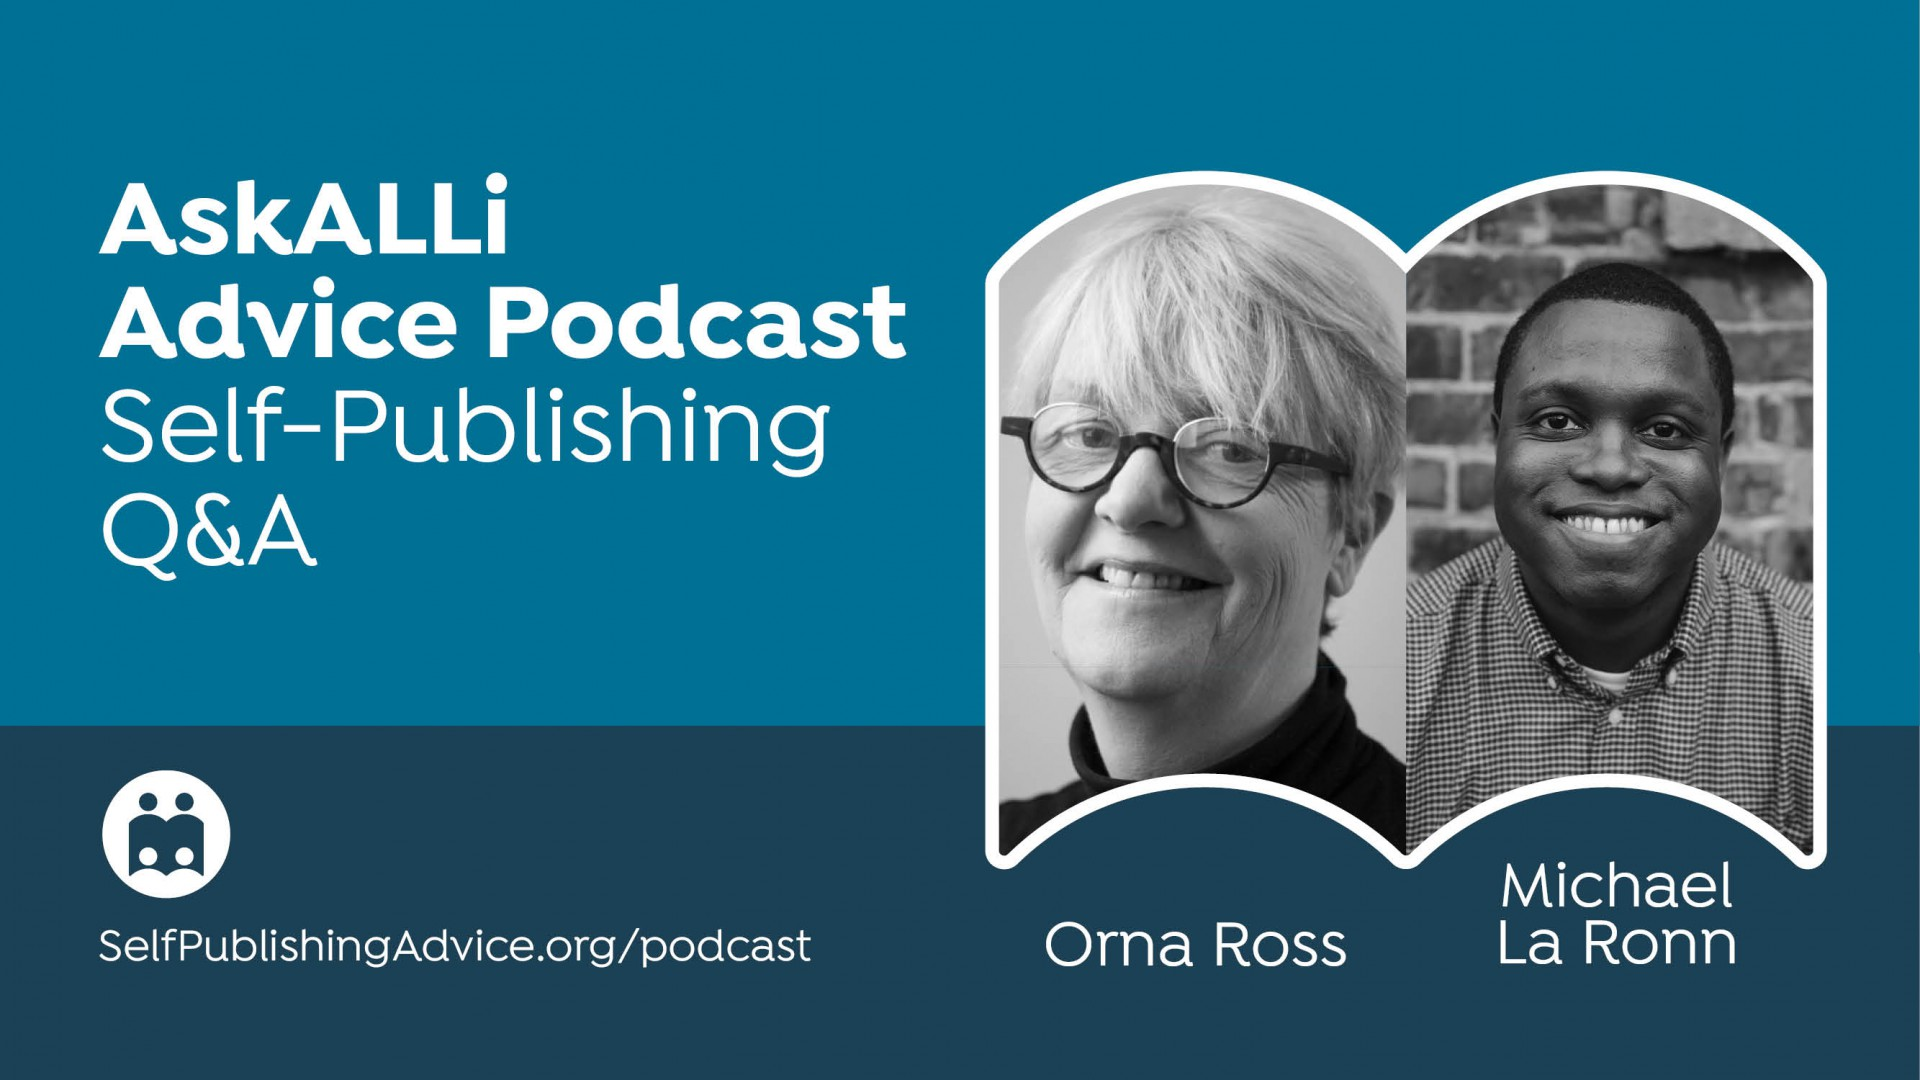 How Do I Manage My Privacy As An Author? Other Questions Answered By Orna Ross And Michael La Ronn In Our Member Q&A Self-Publishing News Podcast